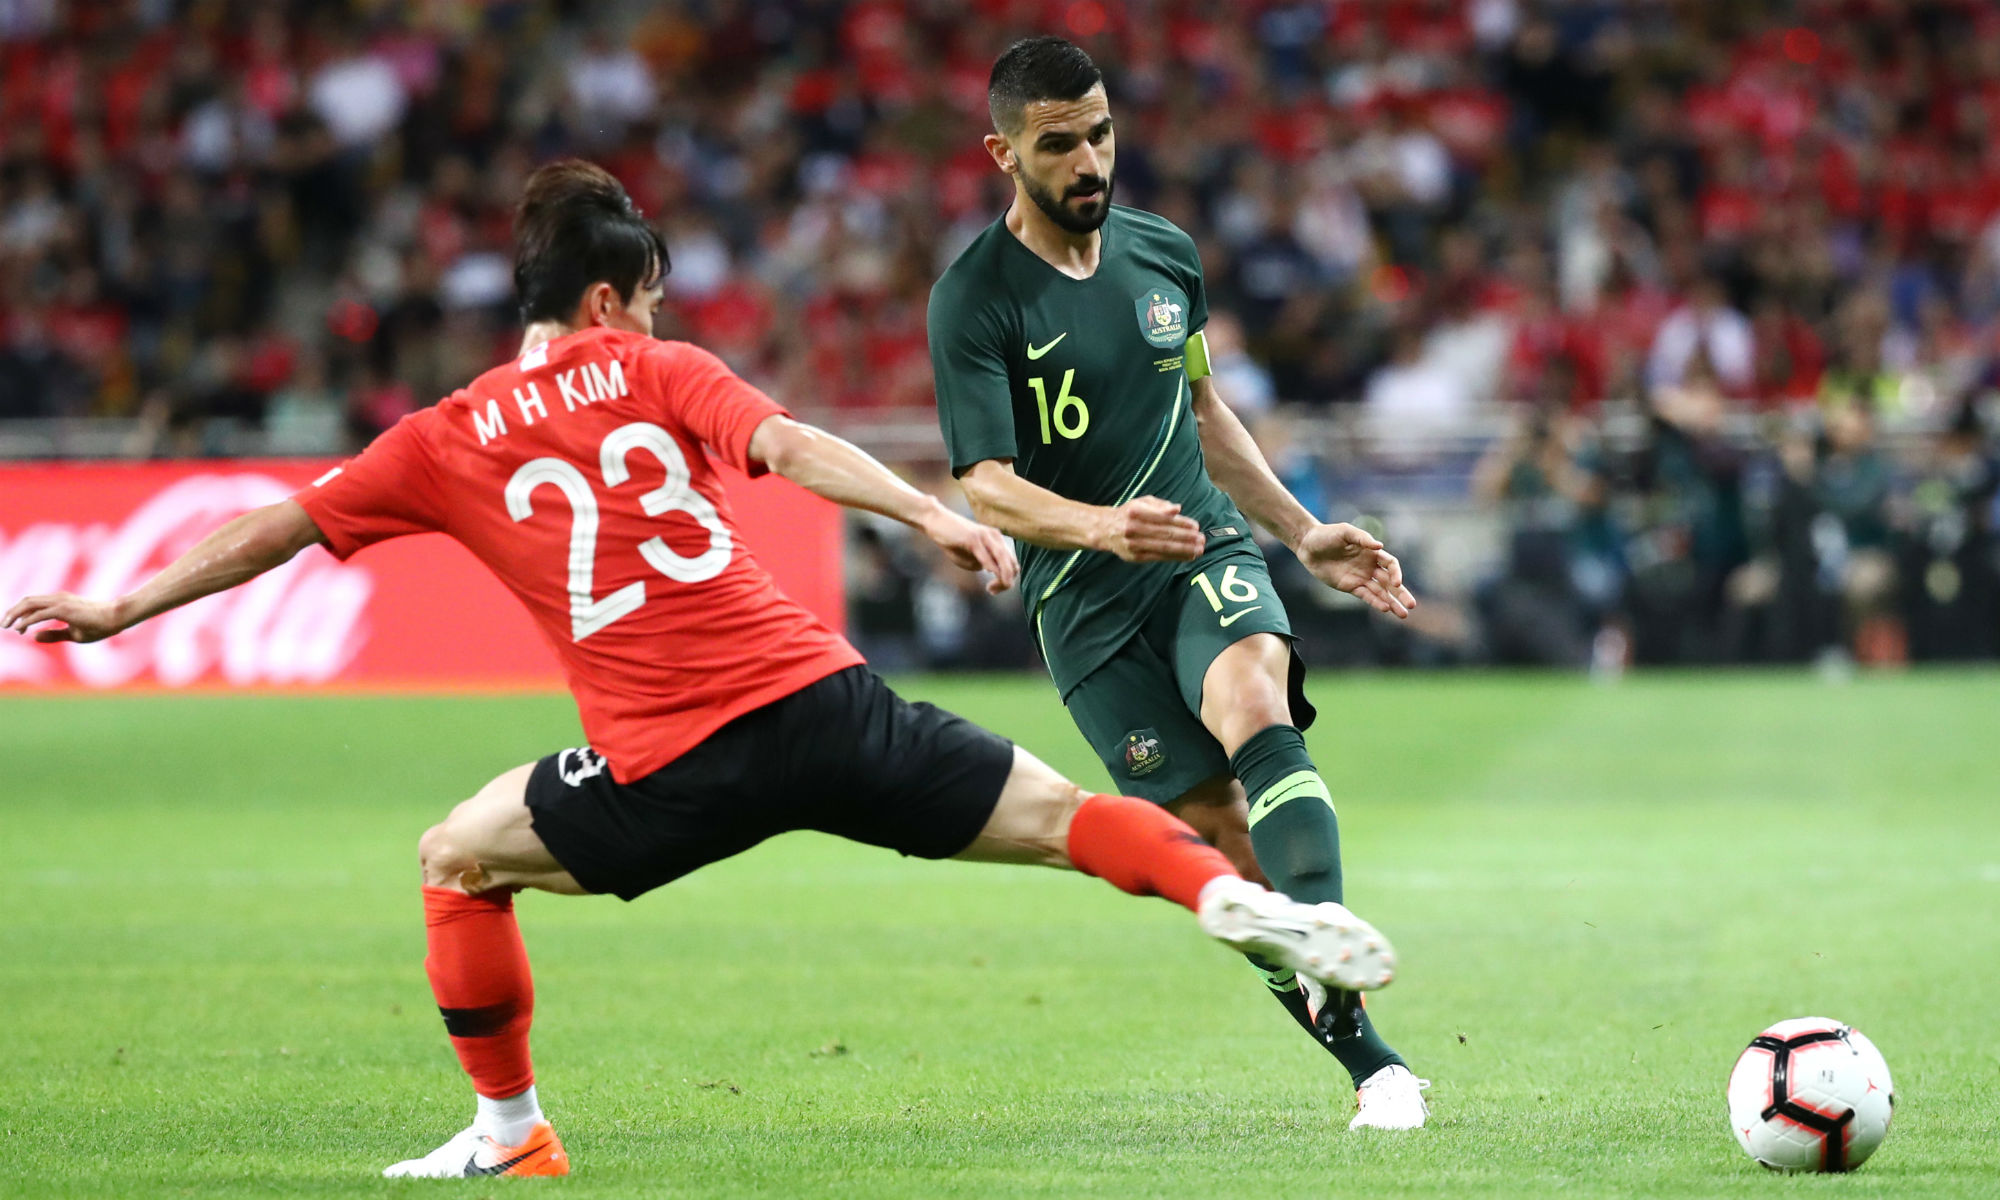 Behich set to face Italian and German giants in UEFA Europa League